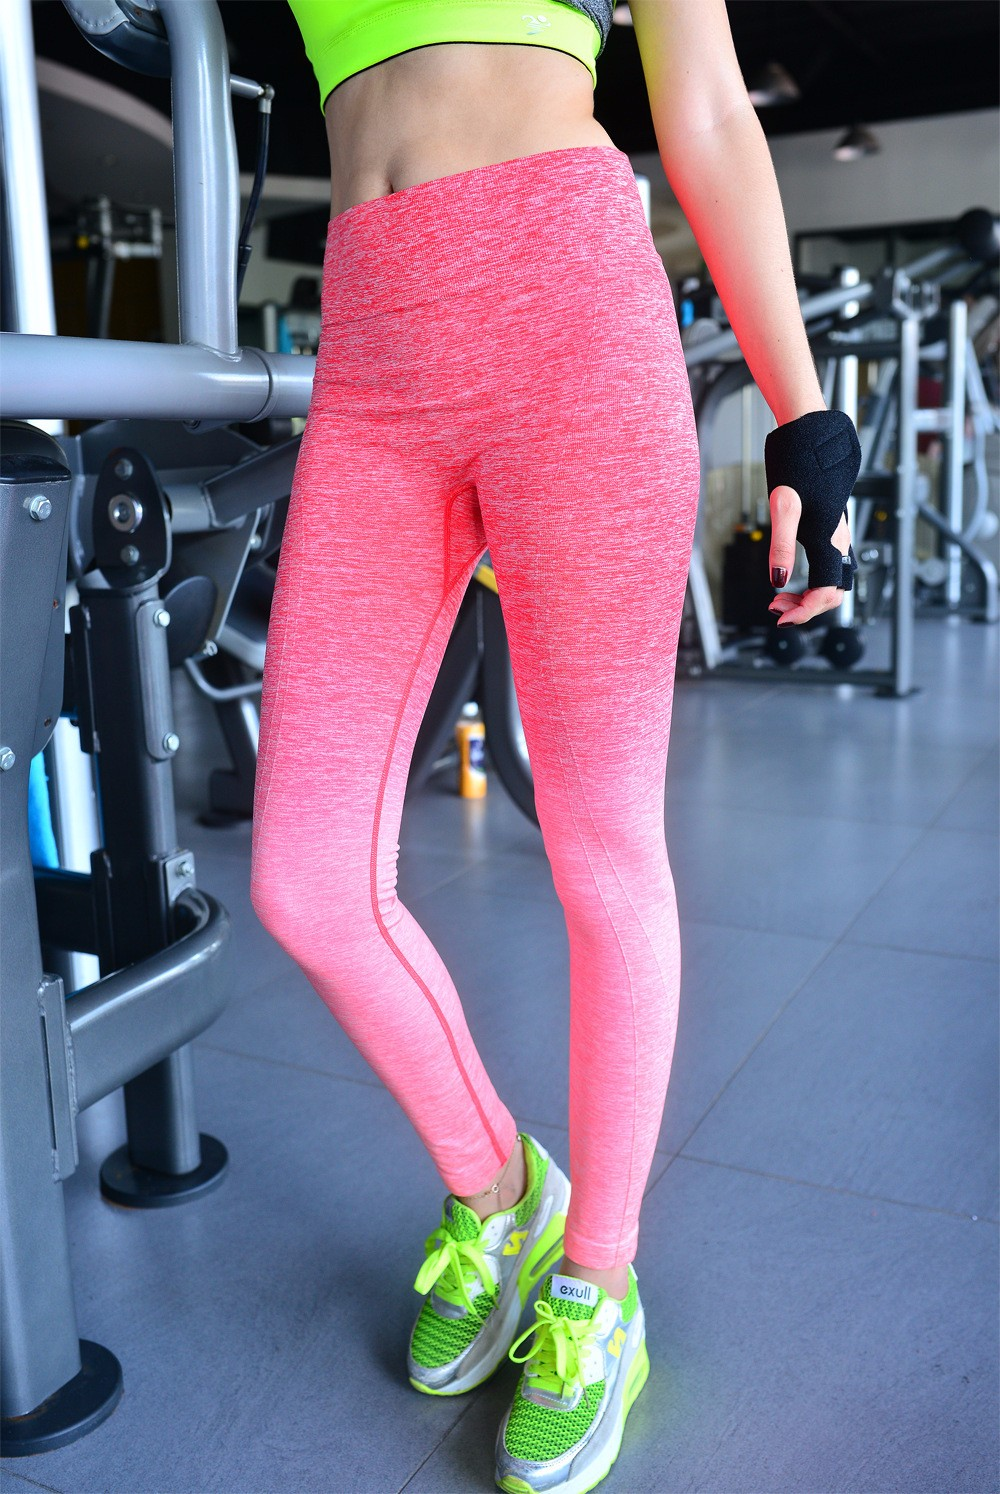 New Arrival Women Fitness Yoga Legging Sports Pants OEM Sports Legging